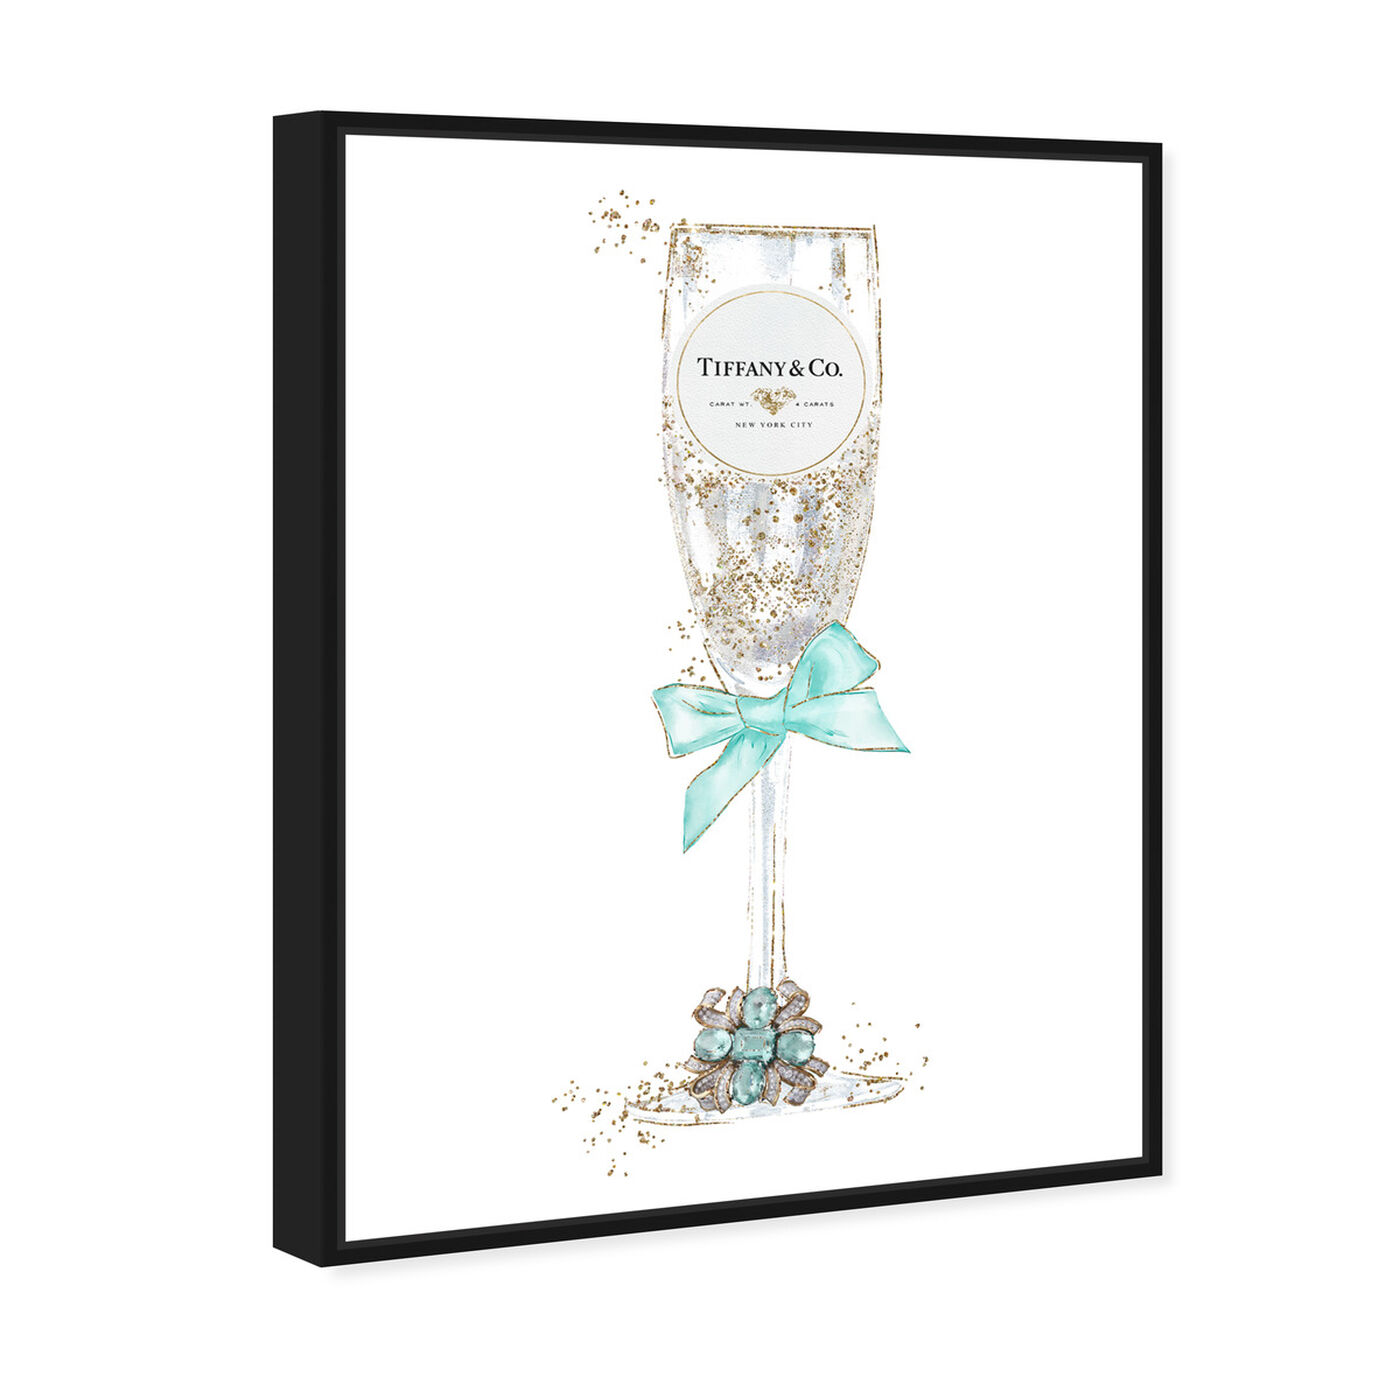 Angled view of Delicate Royal Bubbly Champagne featuring fashion and glam and jewelry art.